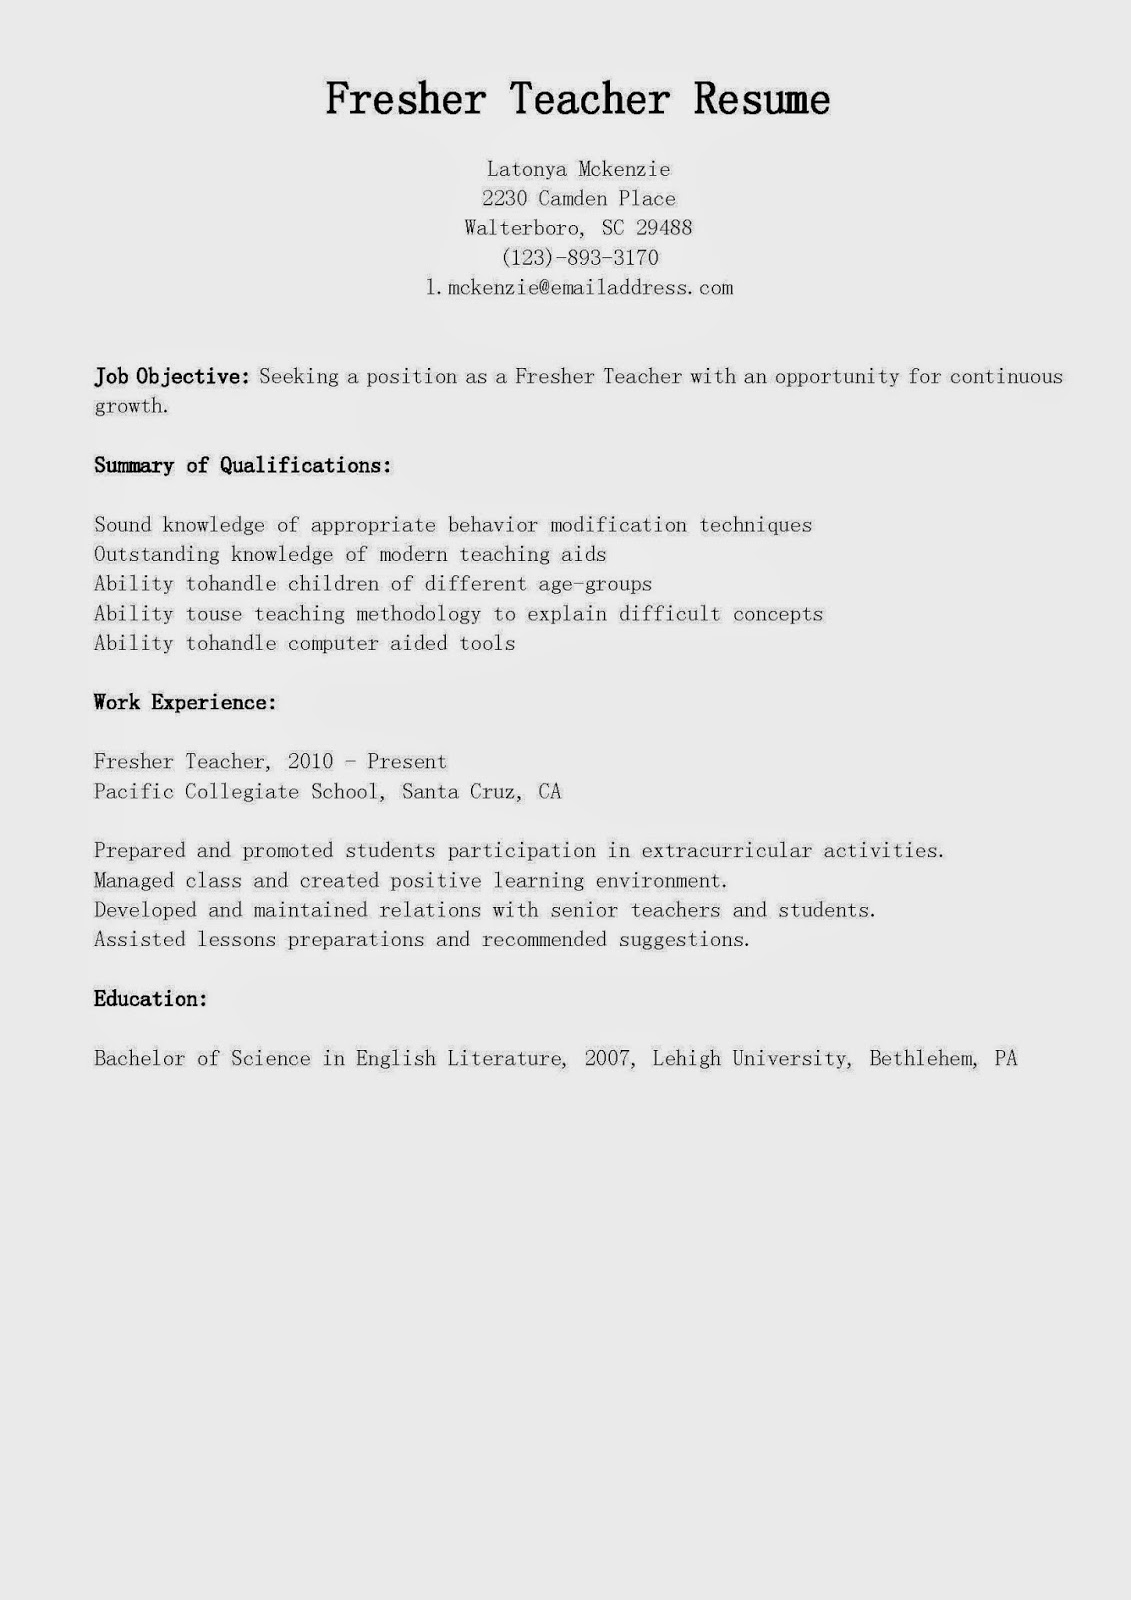 Resume Samples: Fresher Teacher Resume Sample